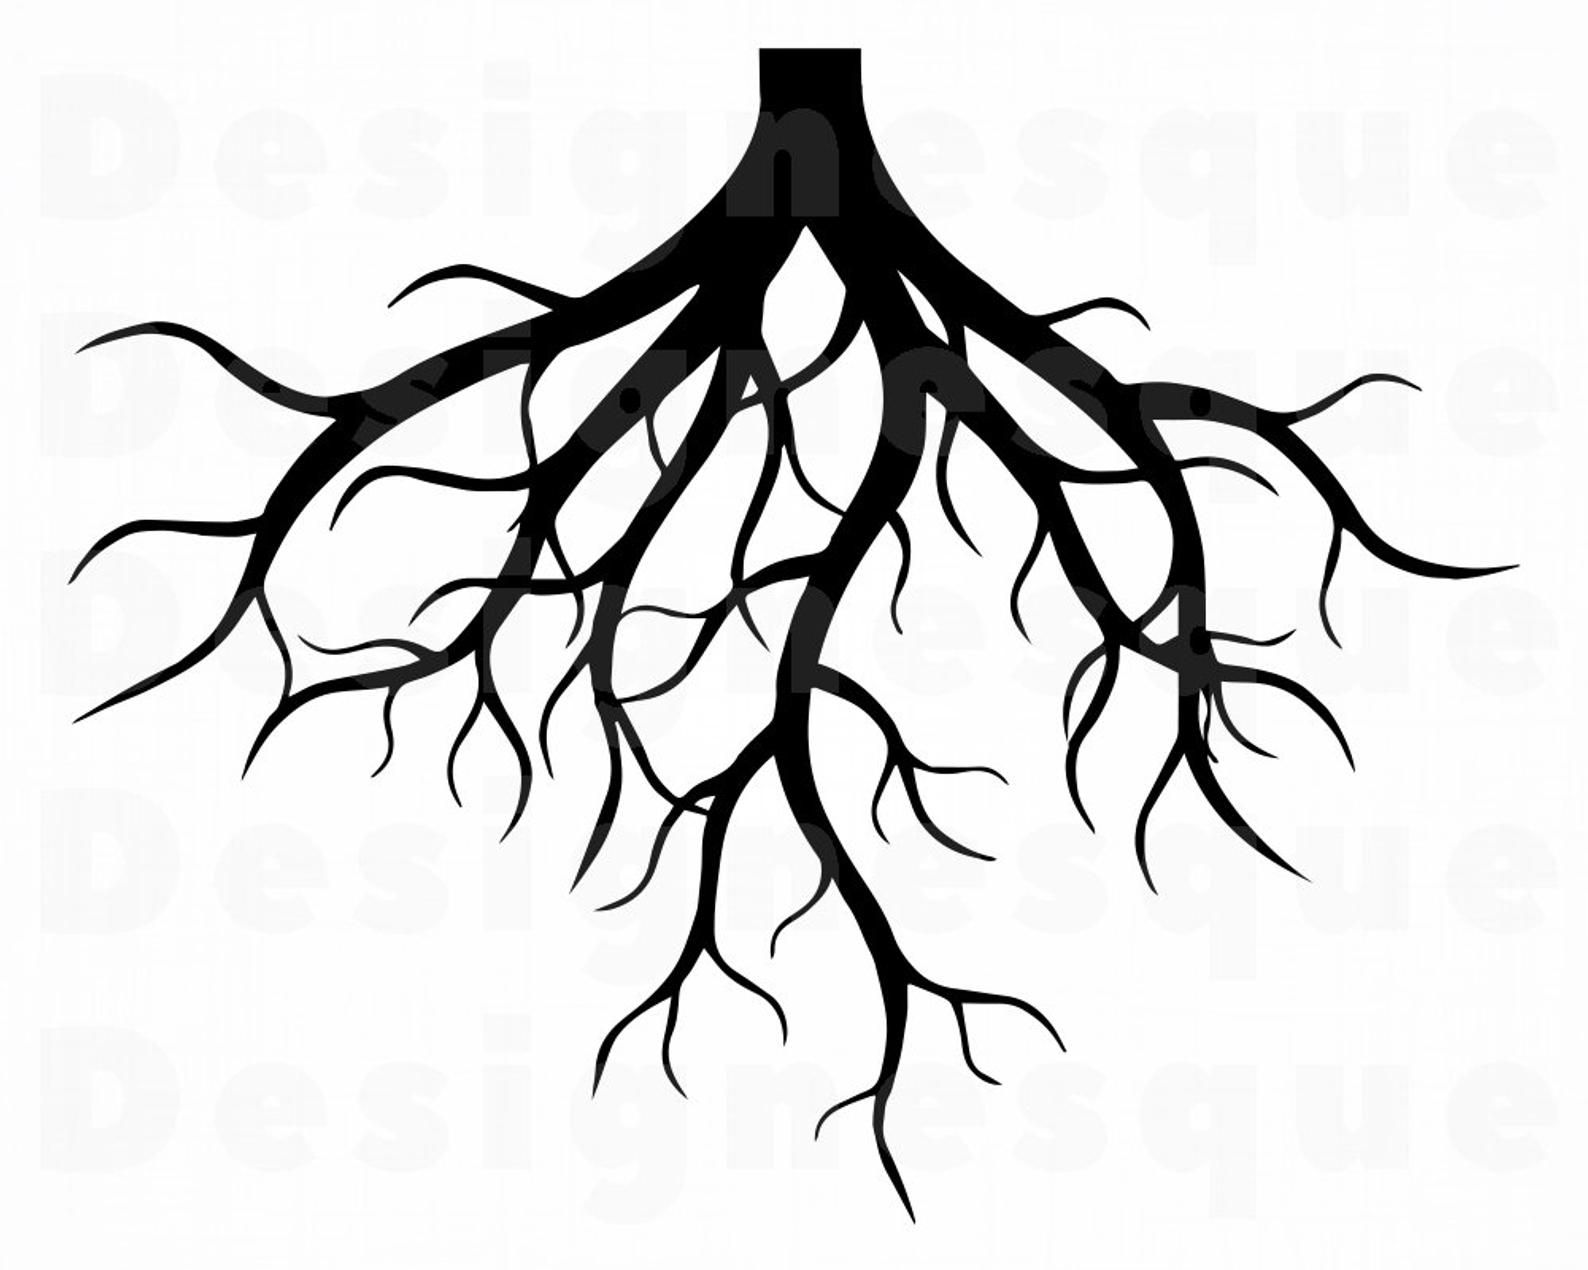 Roots Svg Tree Roots Svg Family Svg Roots Clipart Roots Etsy In 2021 Tree Roots Tattoo Tree Roots Roots Tattoo